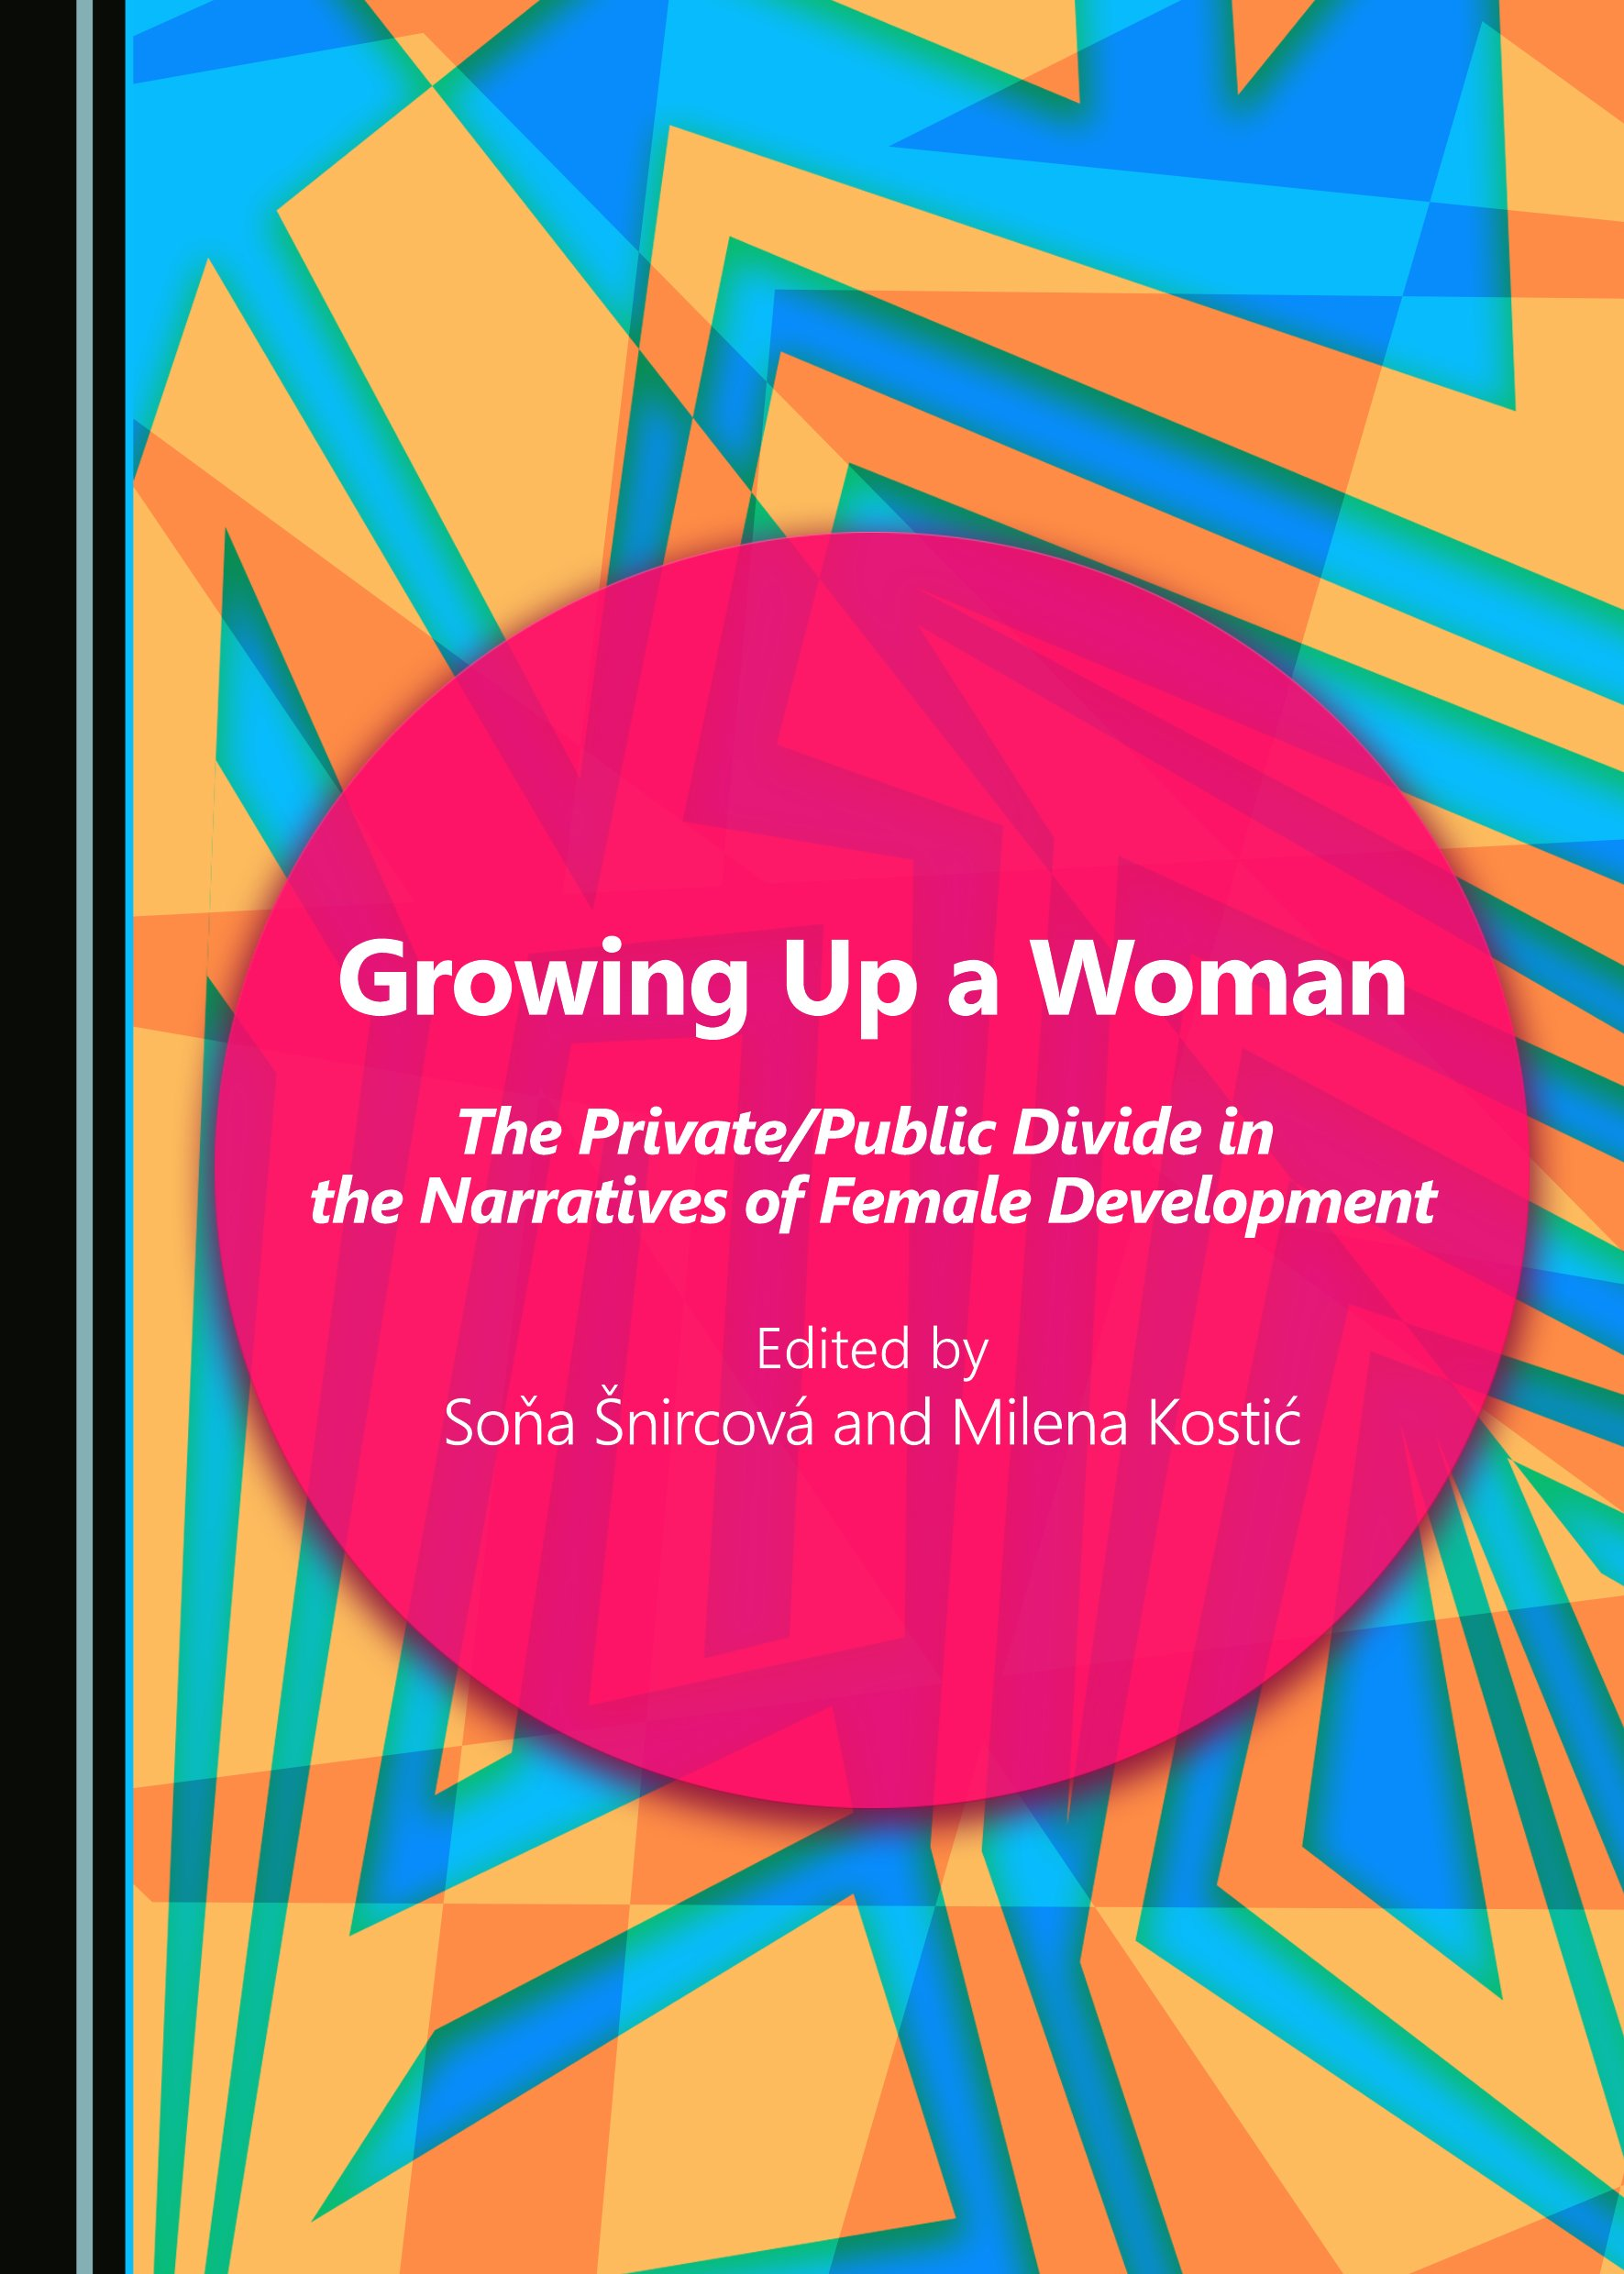 Growing Up a Woman: The Private/Public Divide in the Narratives of Female Development